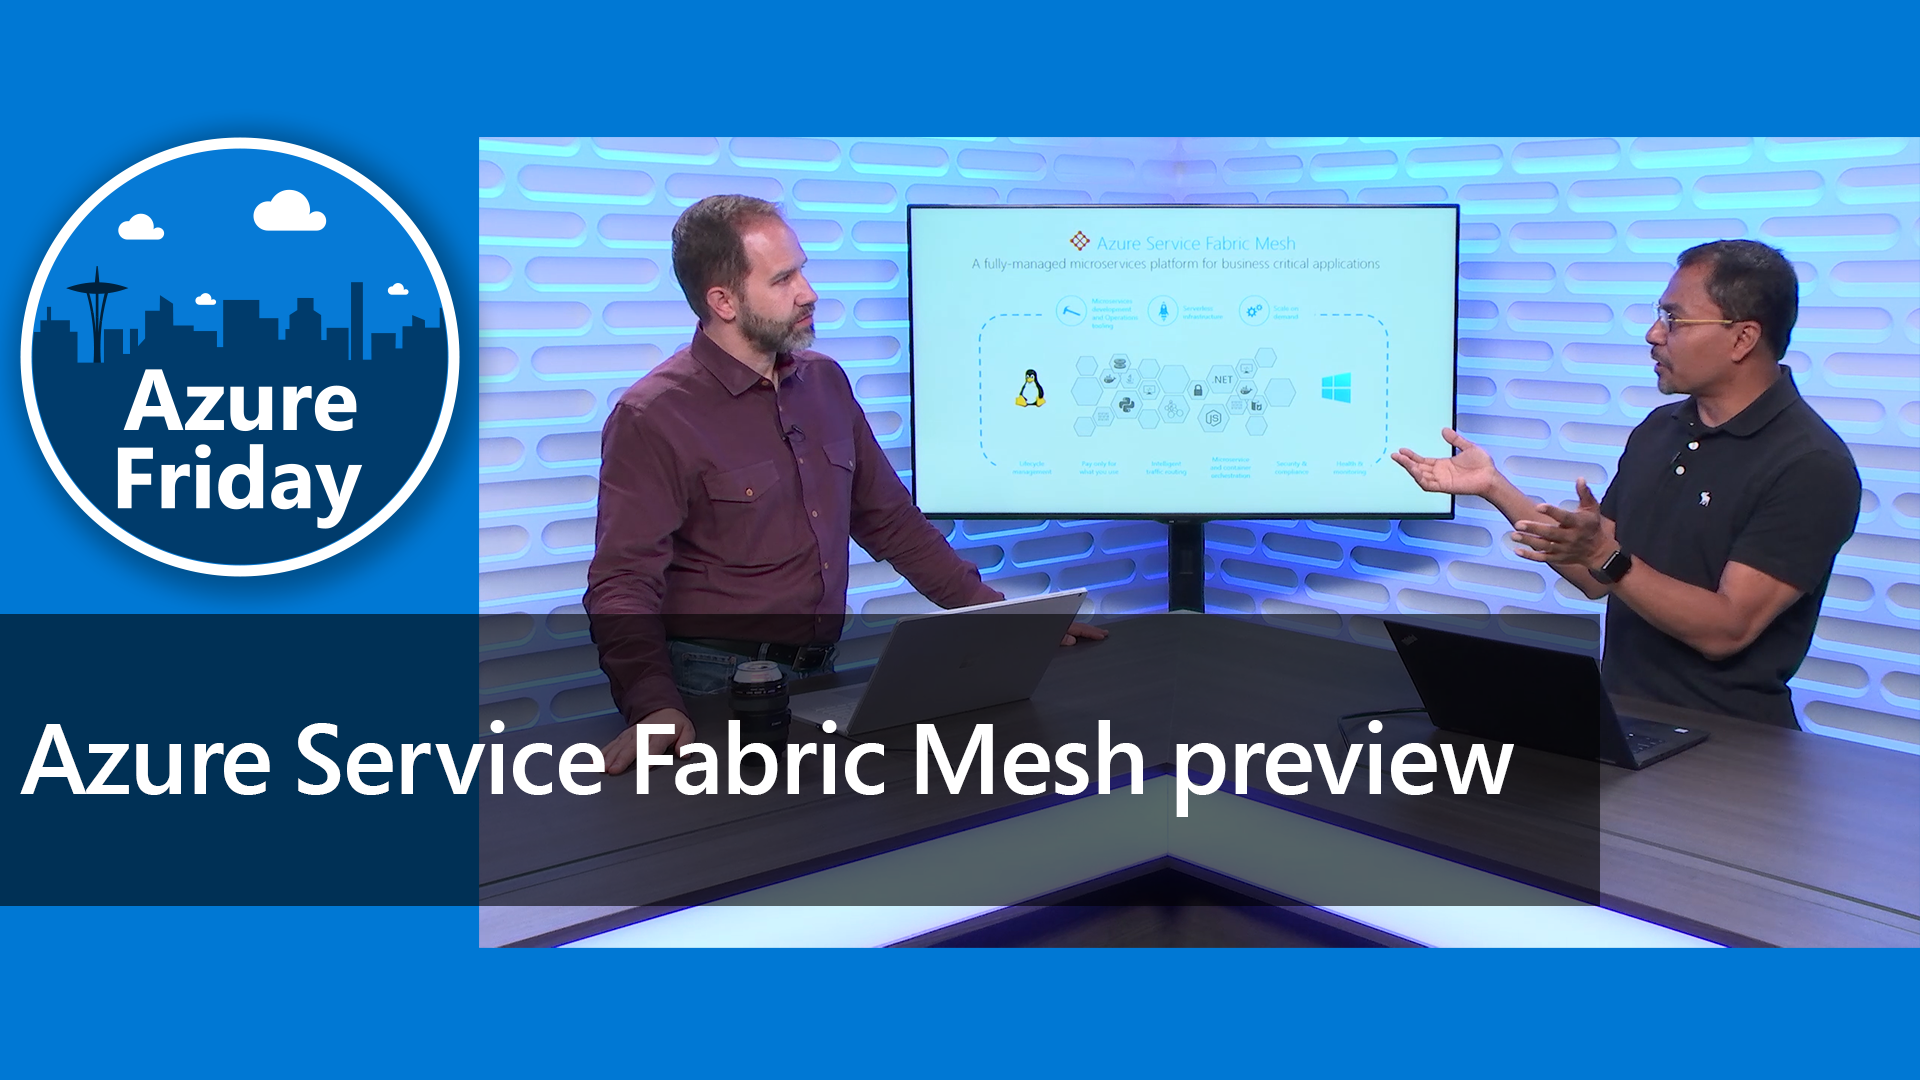 Azure Service Fabric Mesh preview